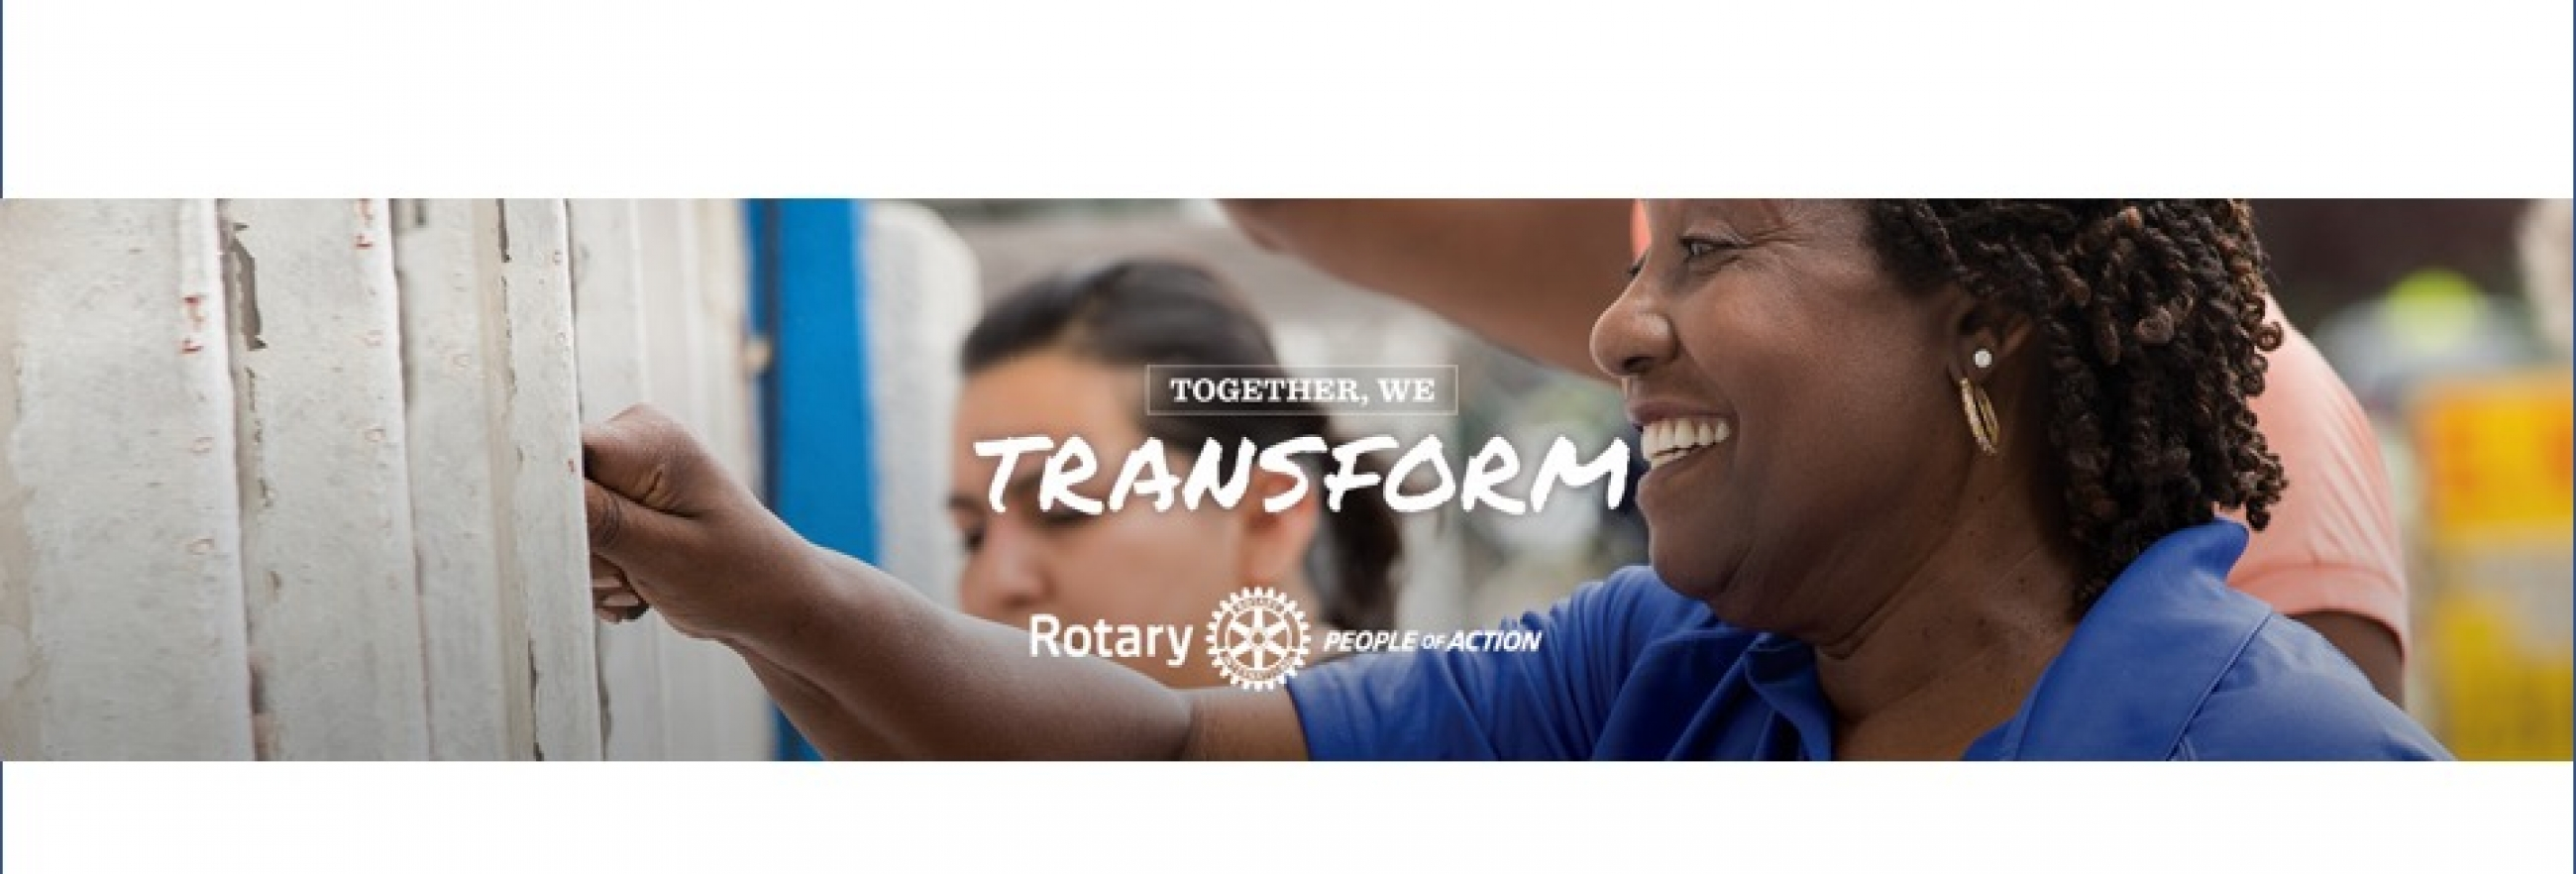 together_we_transform_banner